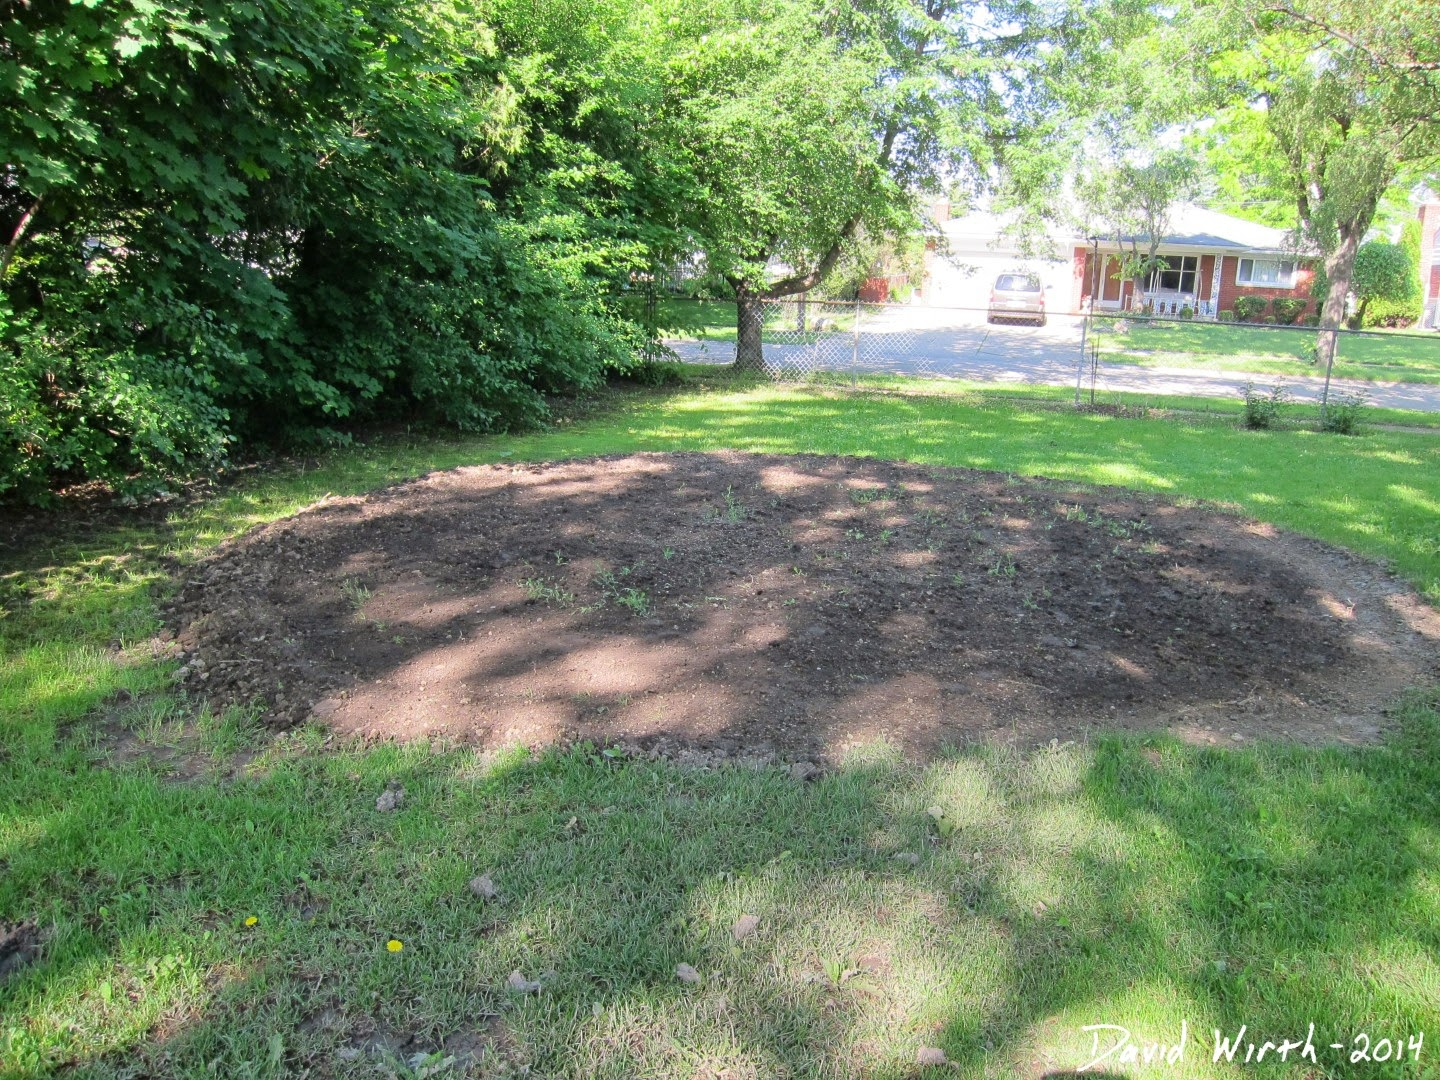 backyard pool area, flatten dirt, dirt for pool level, sand, how to